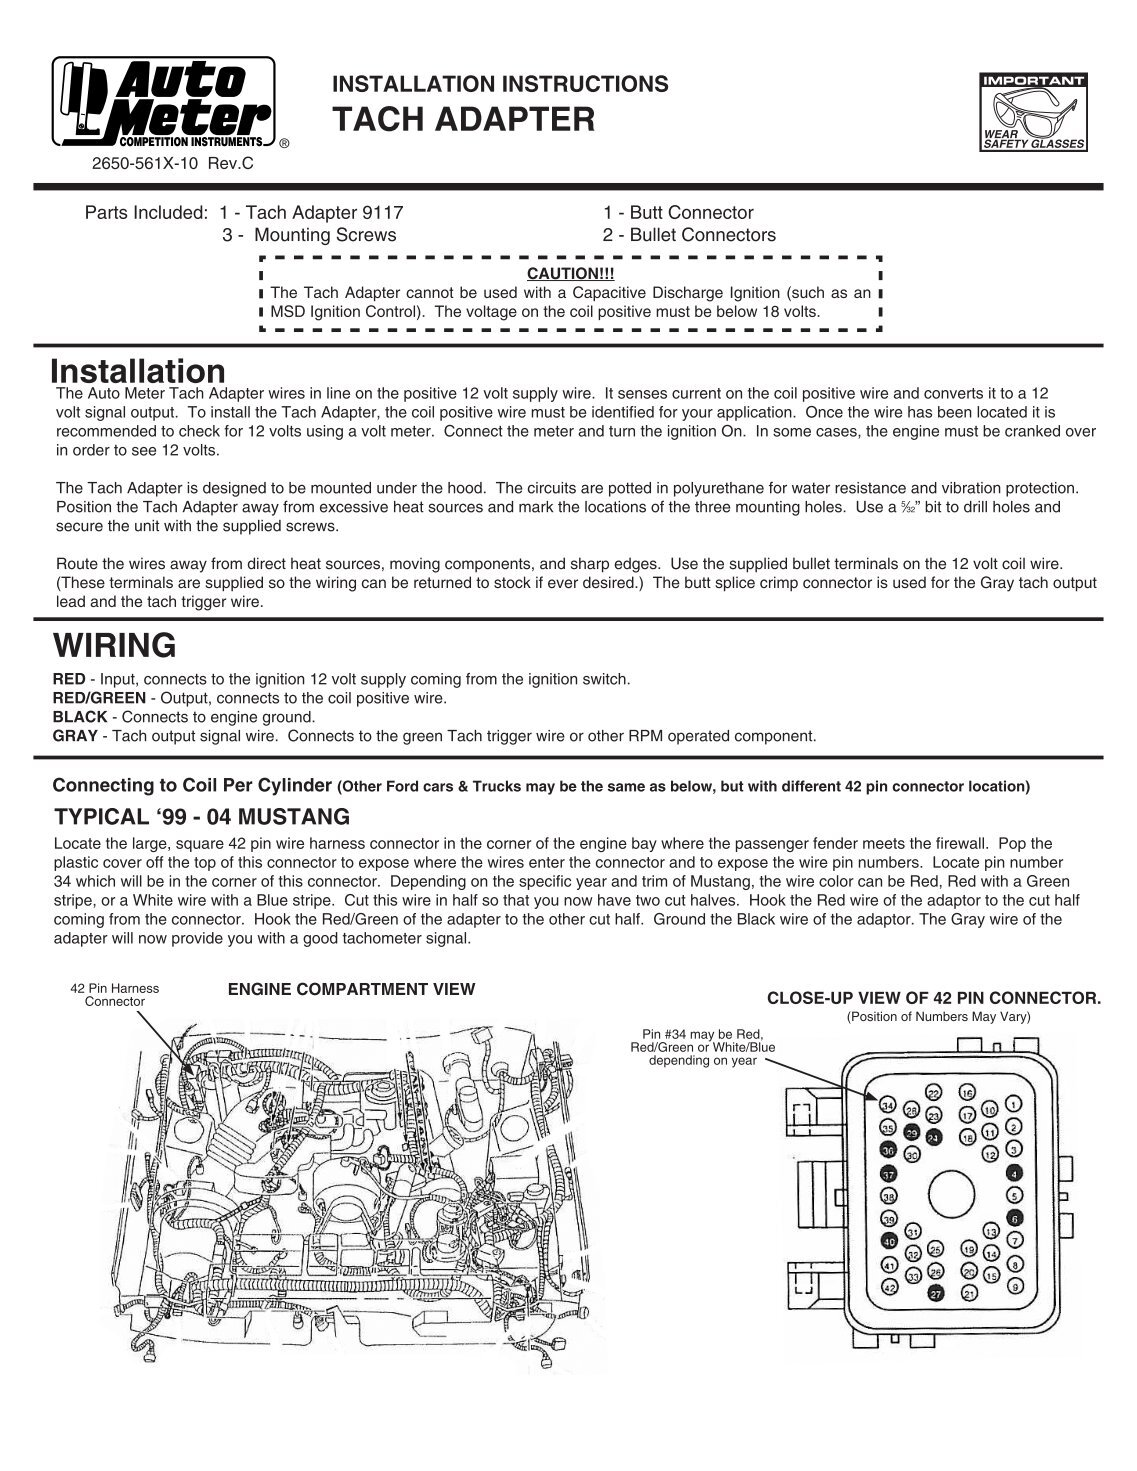 Sun Tach Wiring Instructions Solutions Tachometer Diagram 2